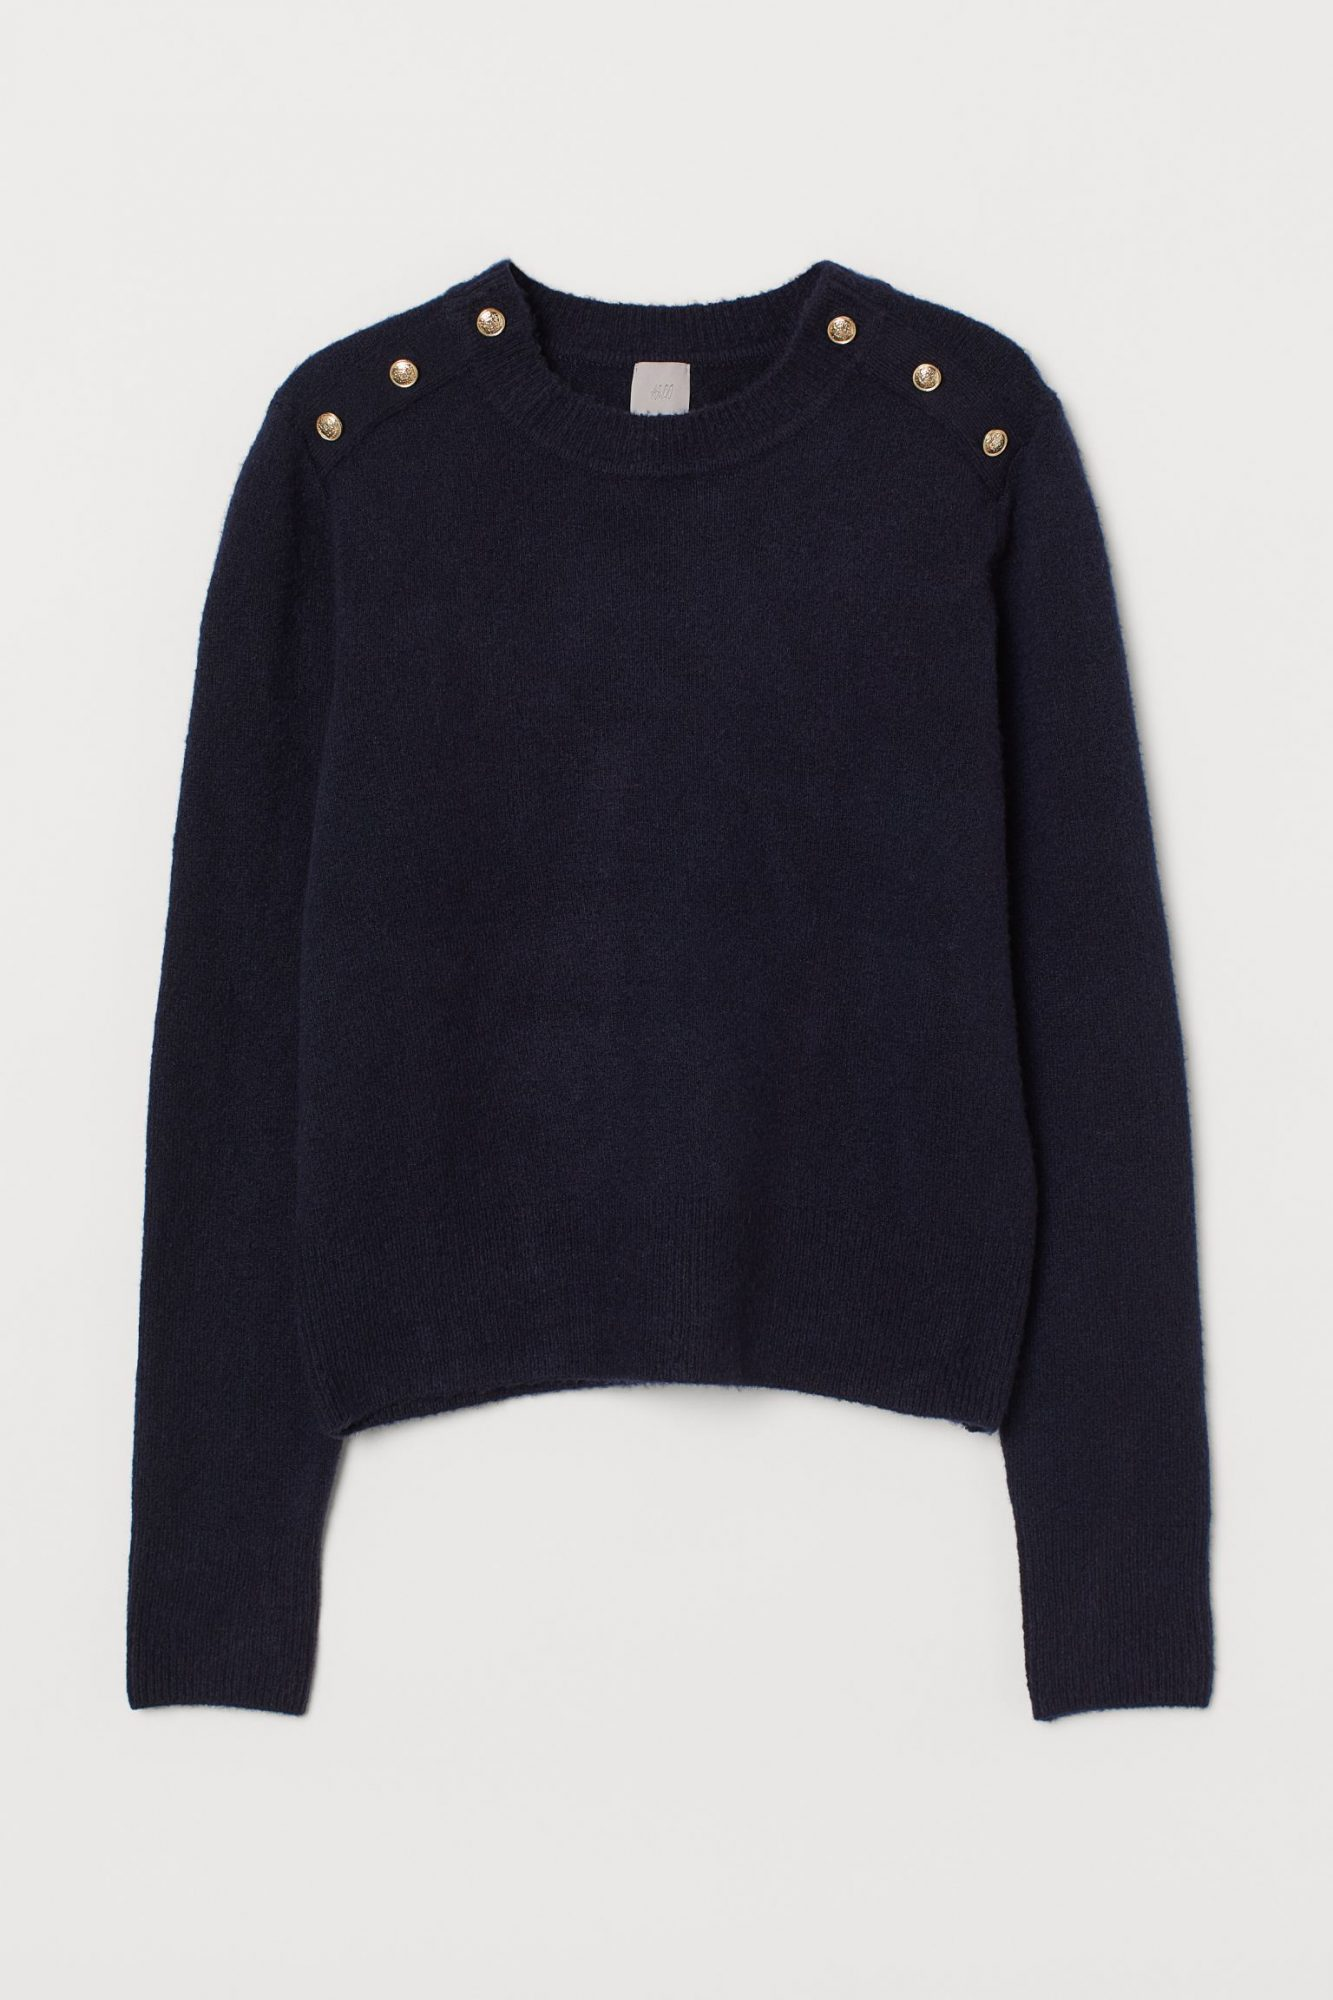 hm gold button sweater